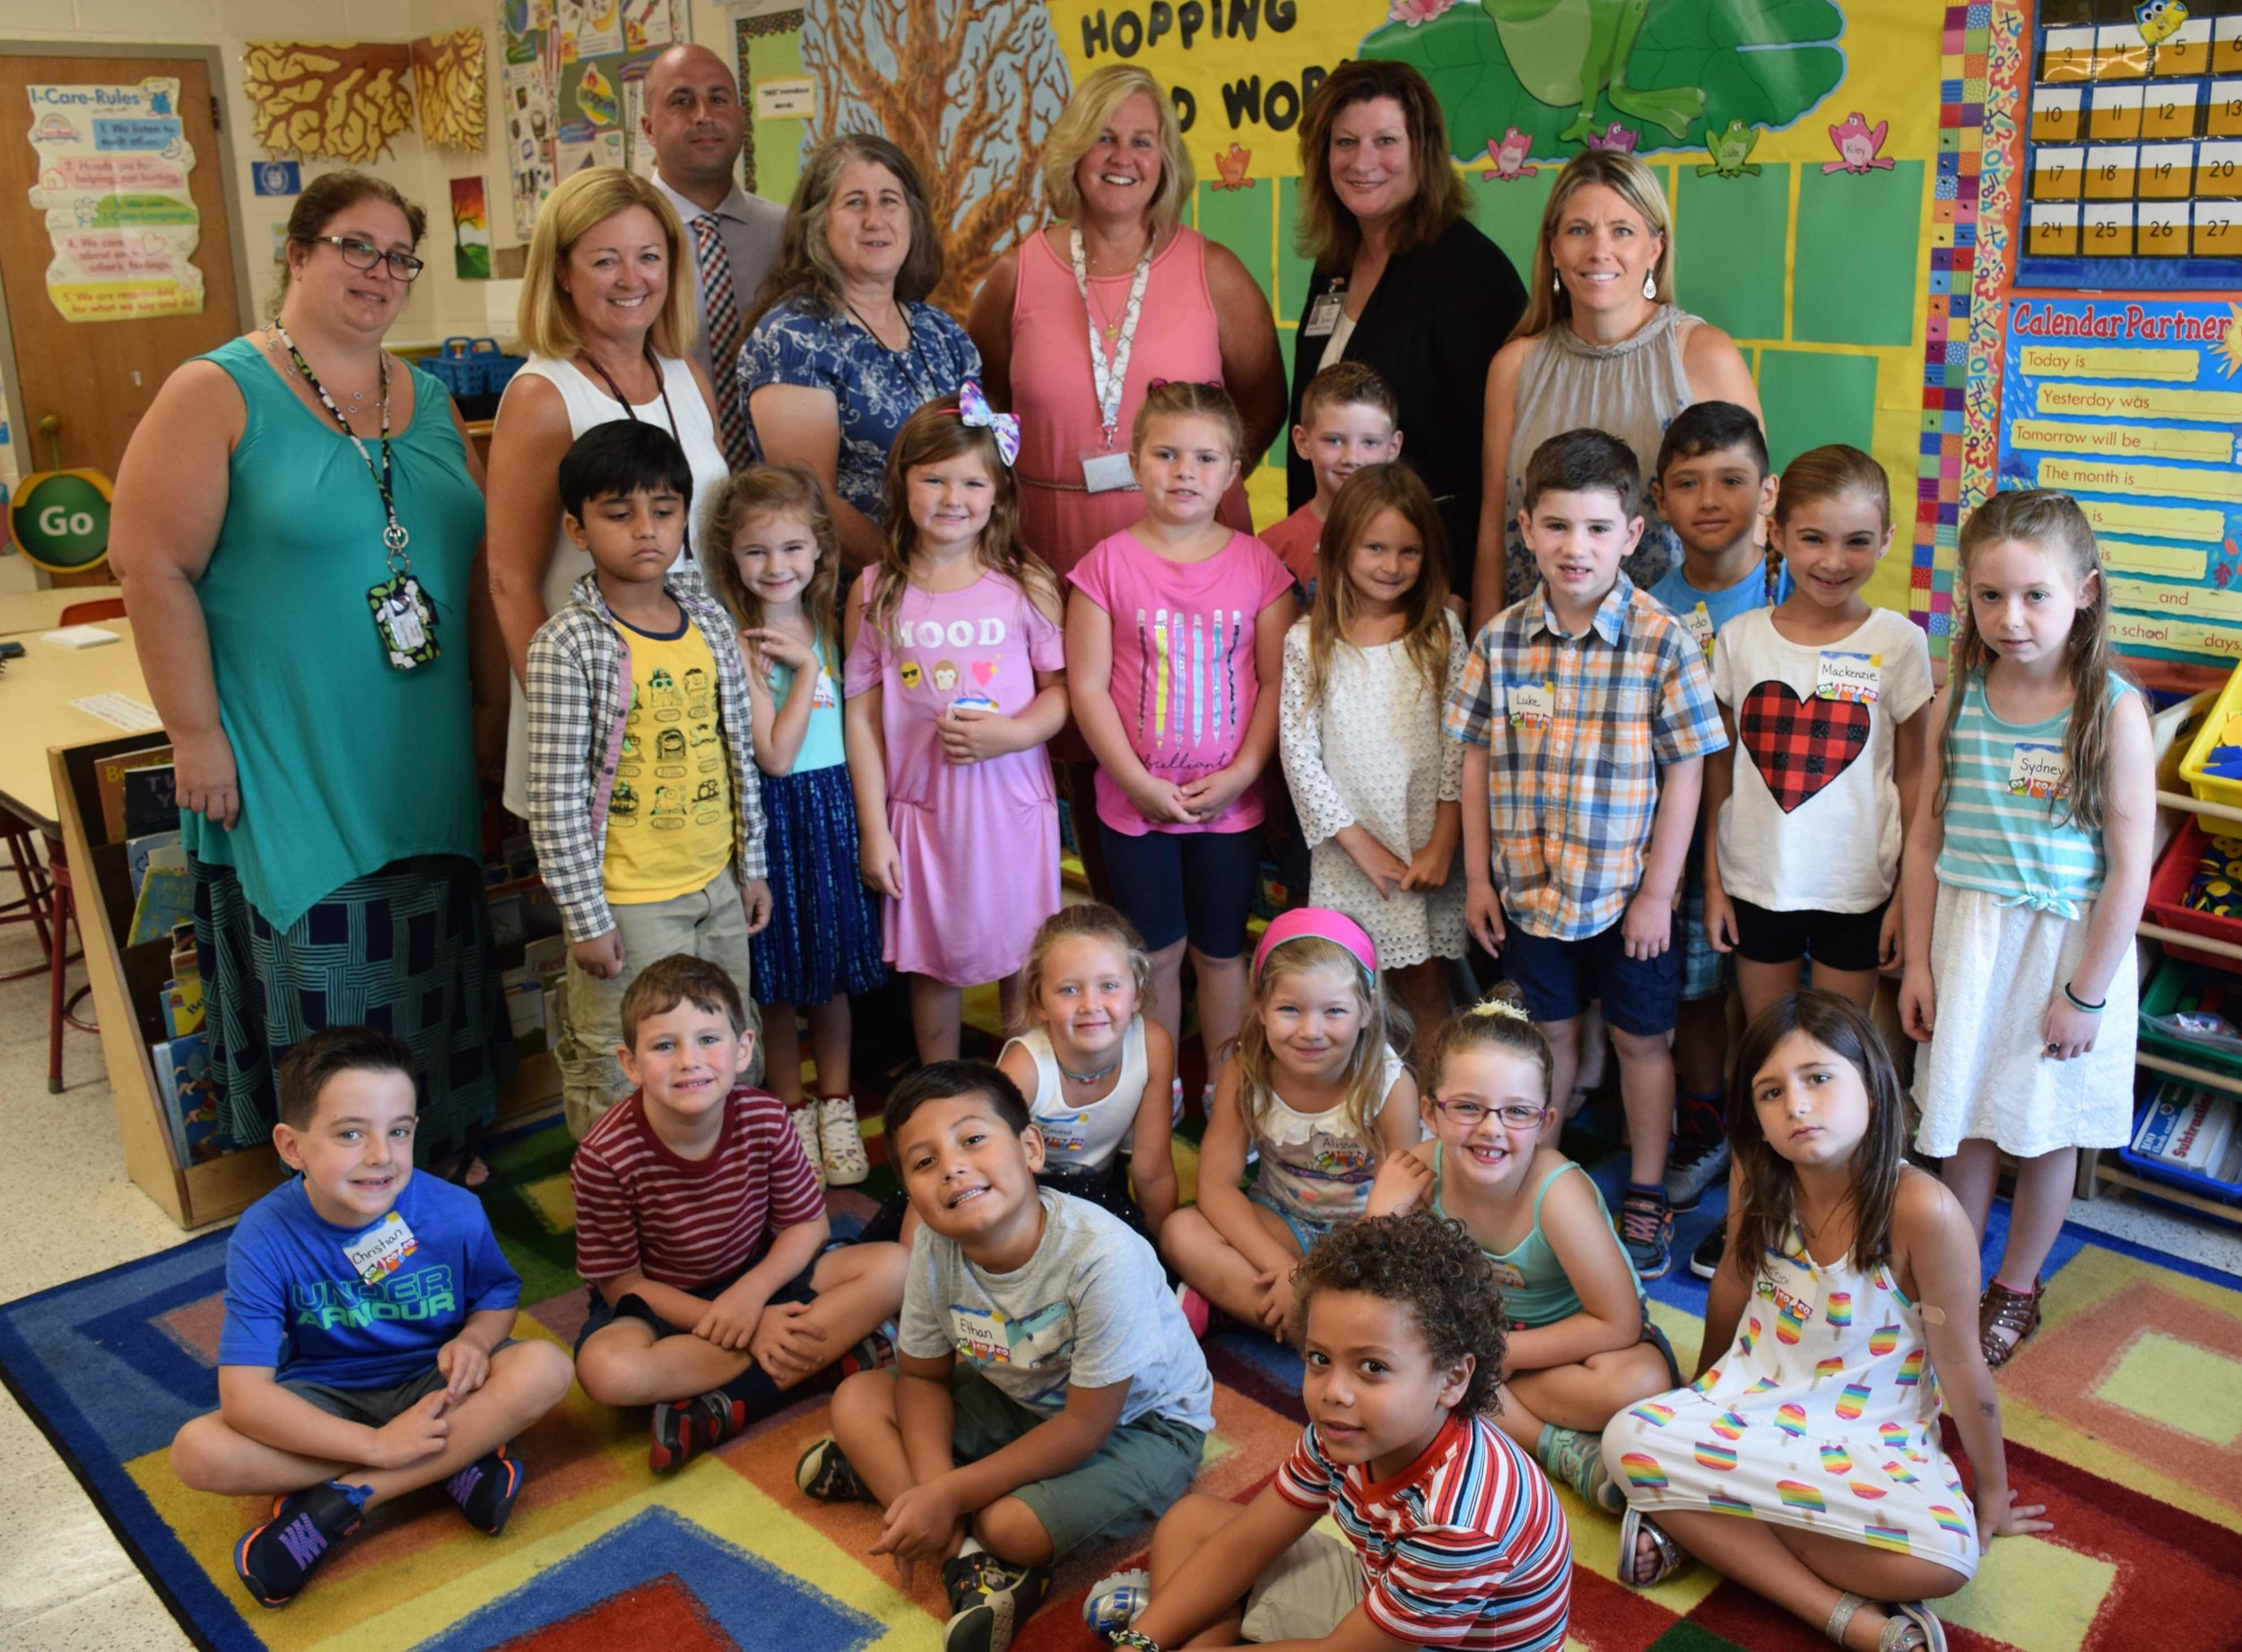 Board of Education members Melissa-Cmar Grote, Peter Mayo and Joanne DeLauter, John Dinkelmeyer Elementary School Principal Faith Skelos and Superintendent Marie Testa greeted Lori Chandler's class on the first day of school. The teacher aide is pictured second from left.